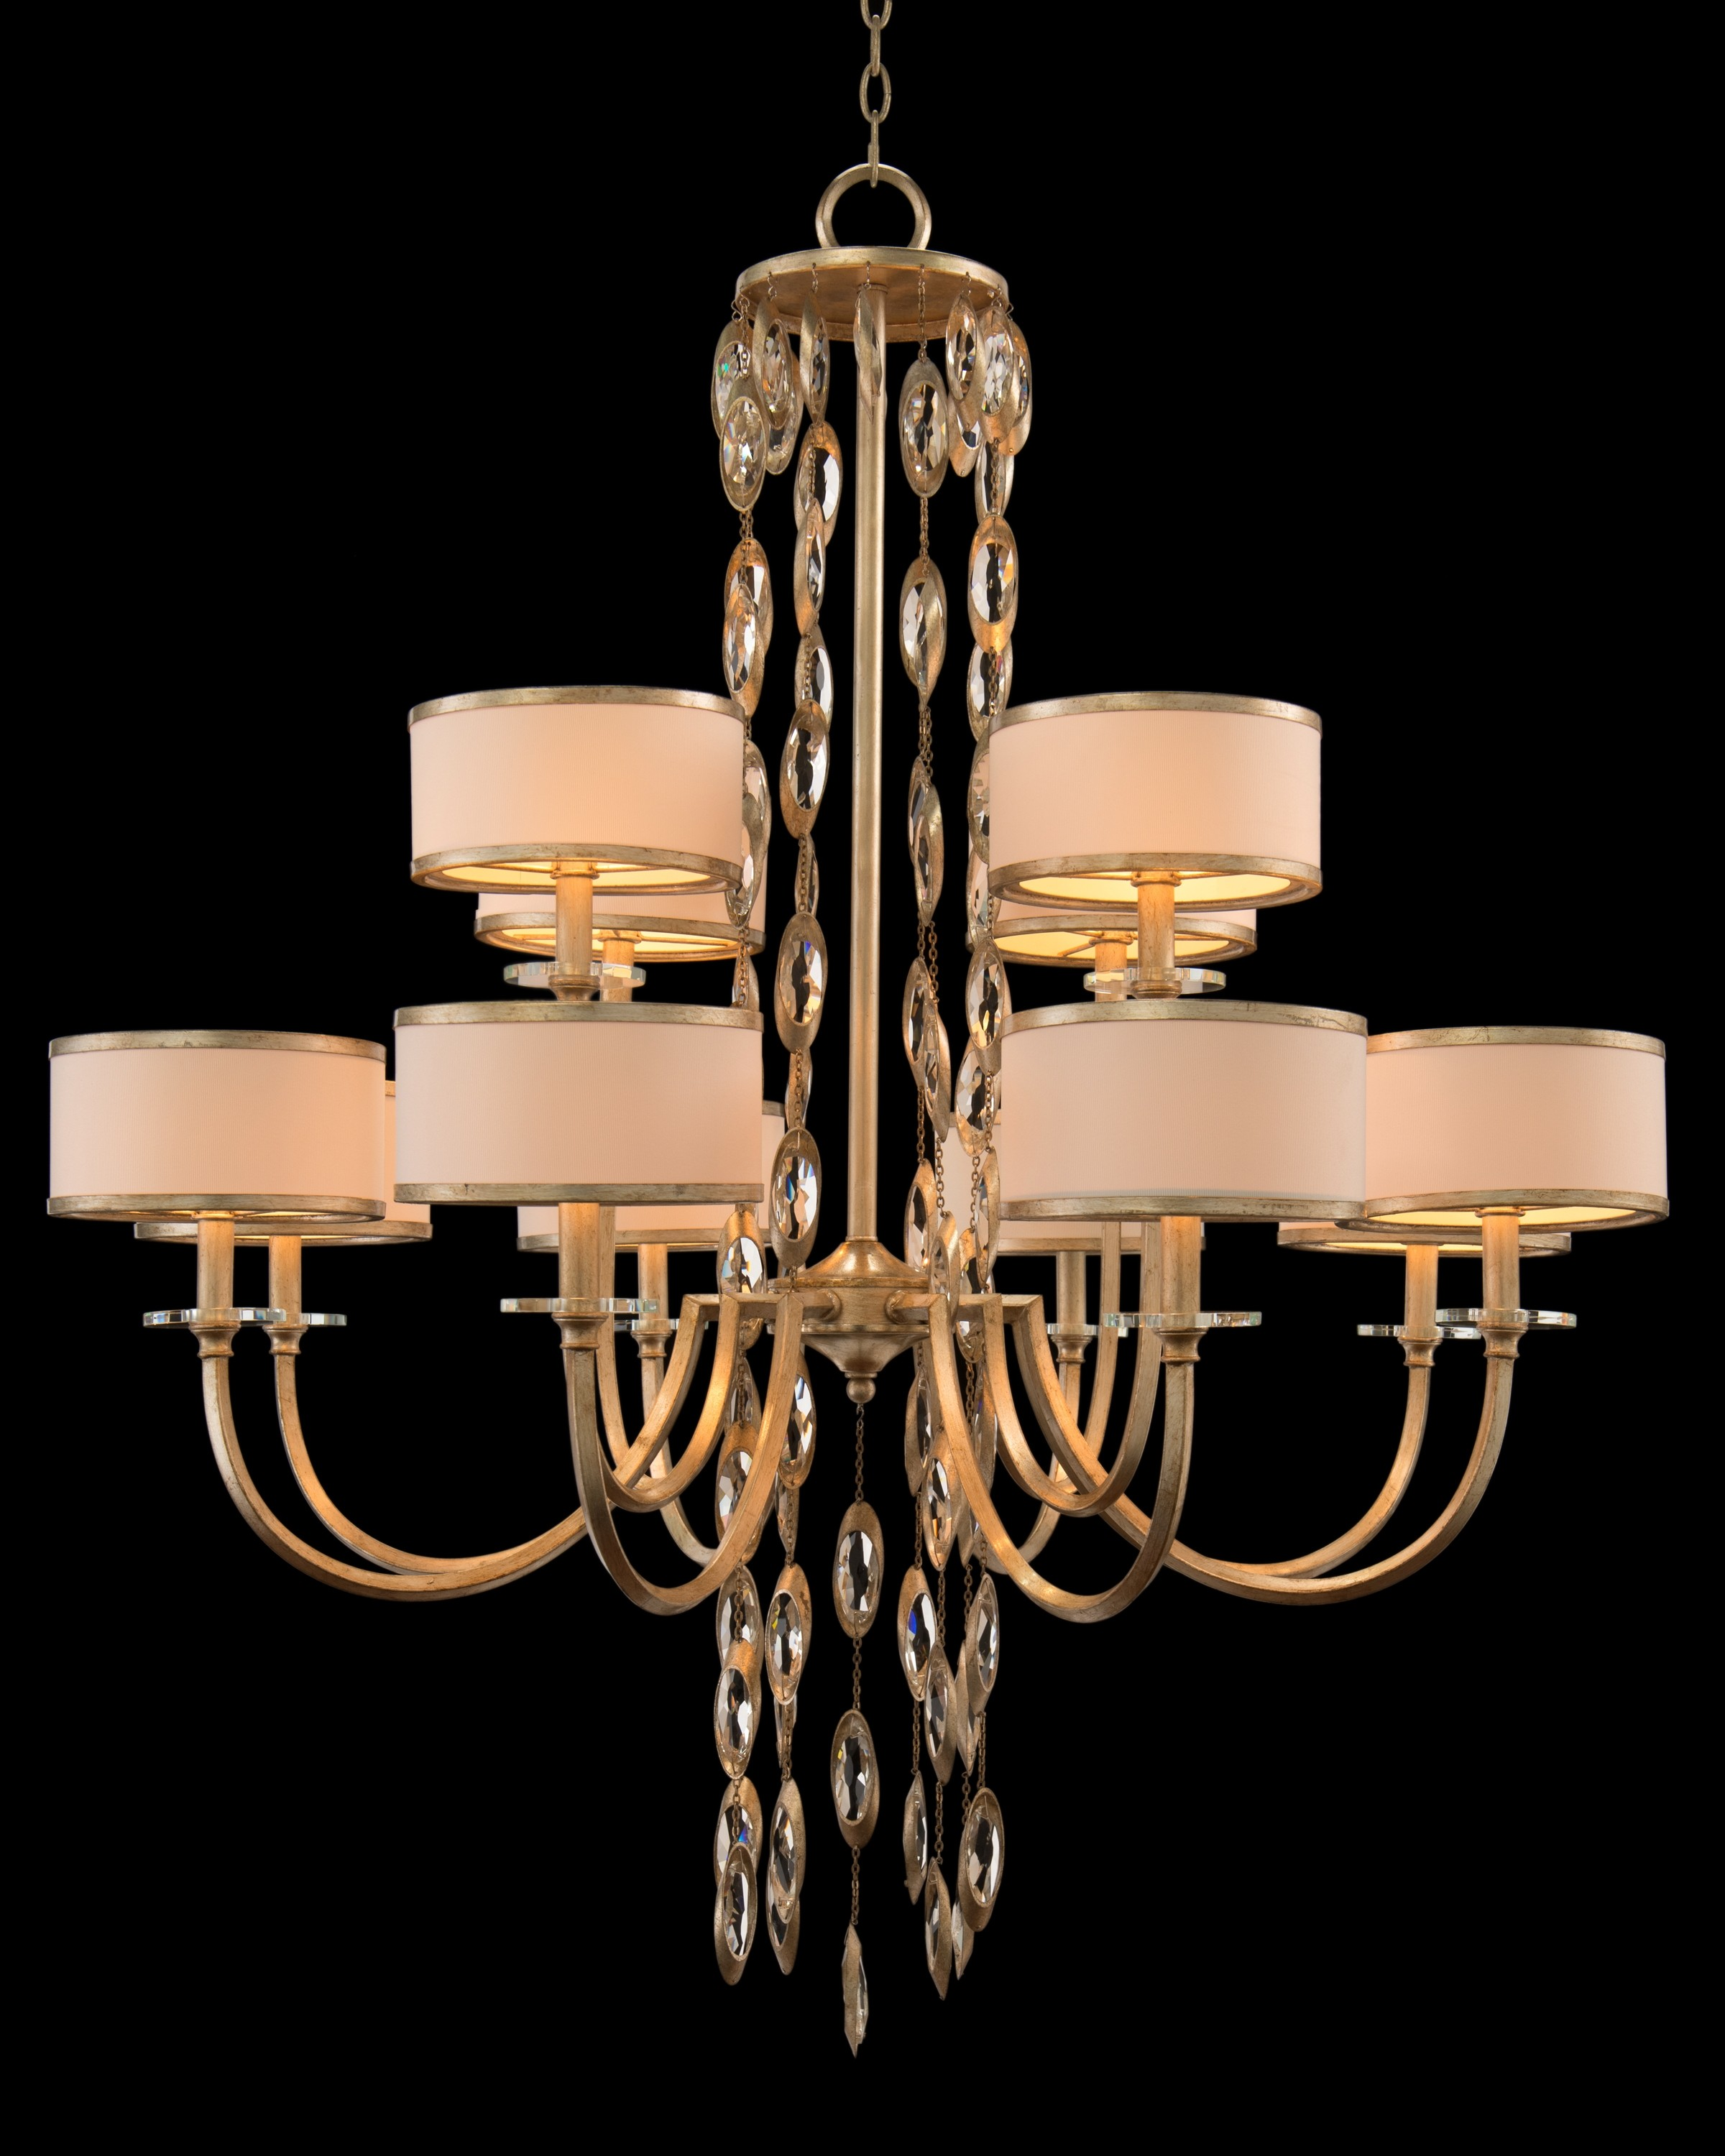 Counterpoint Twelve-Light Large Chandelier w/ White/Champagne Shades